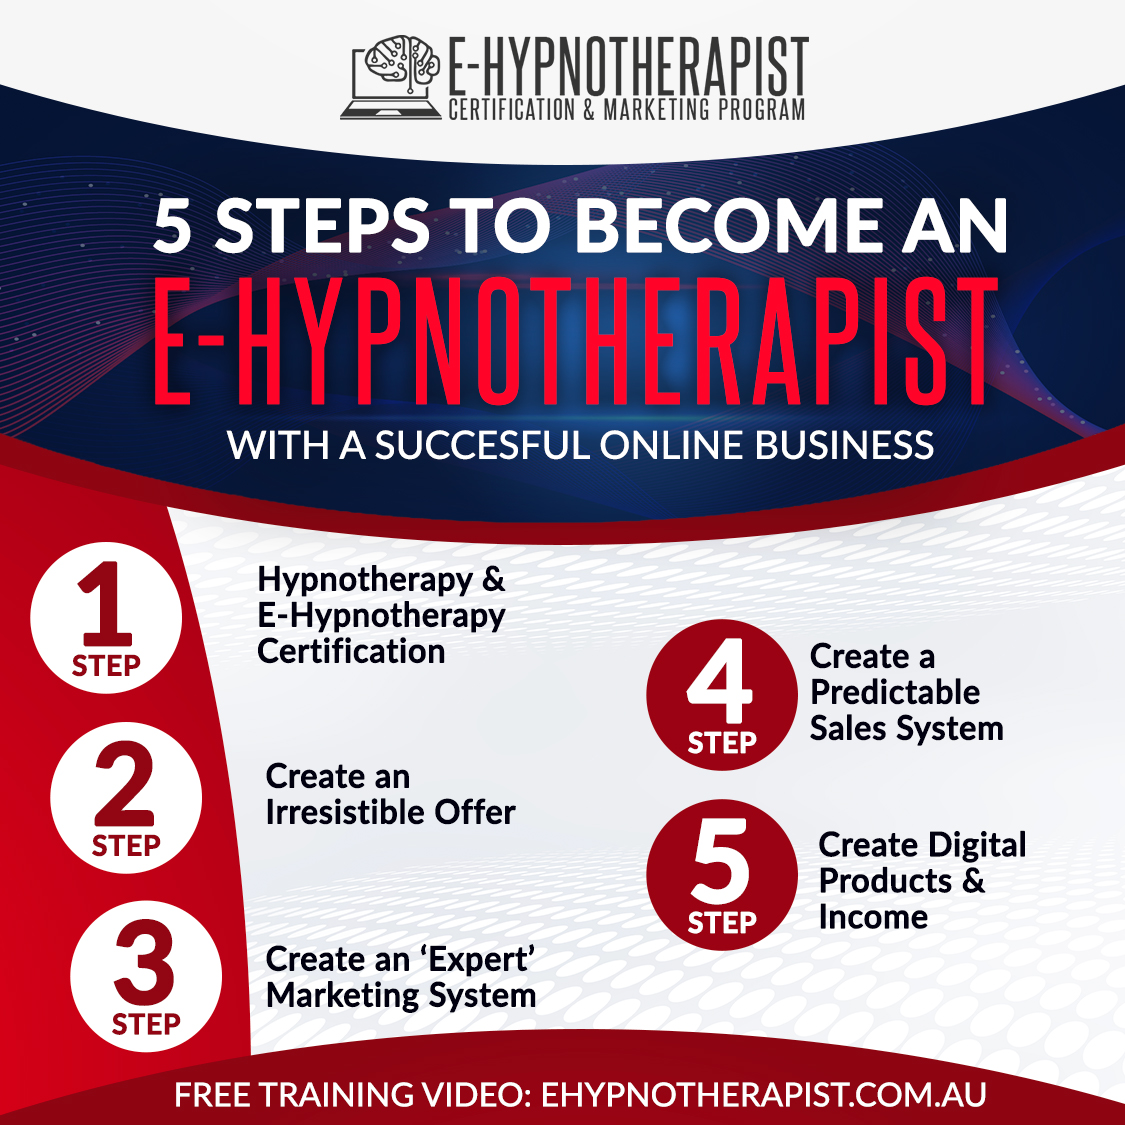 5 Steps To Become A Digital E-Hypnotherapist Summary